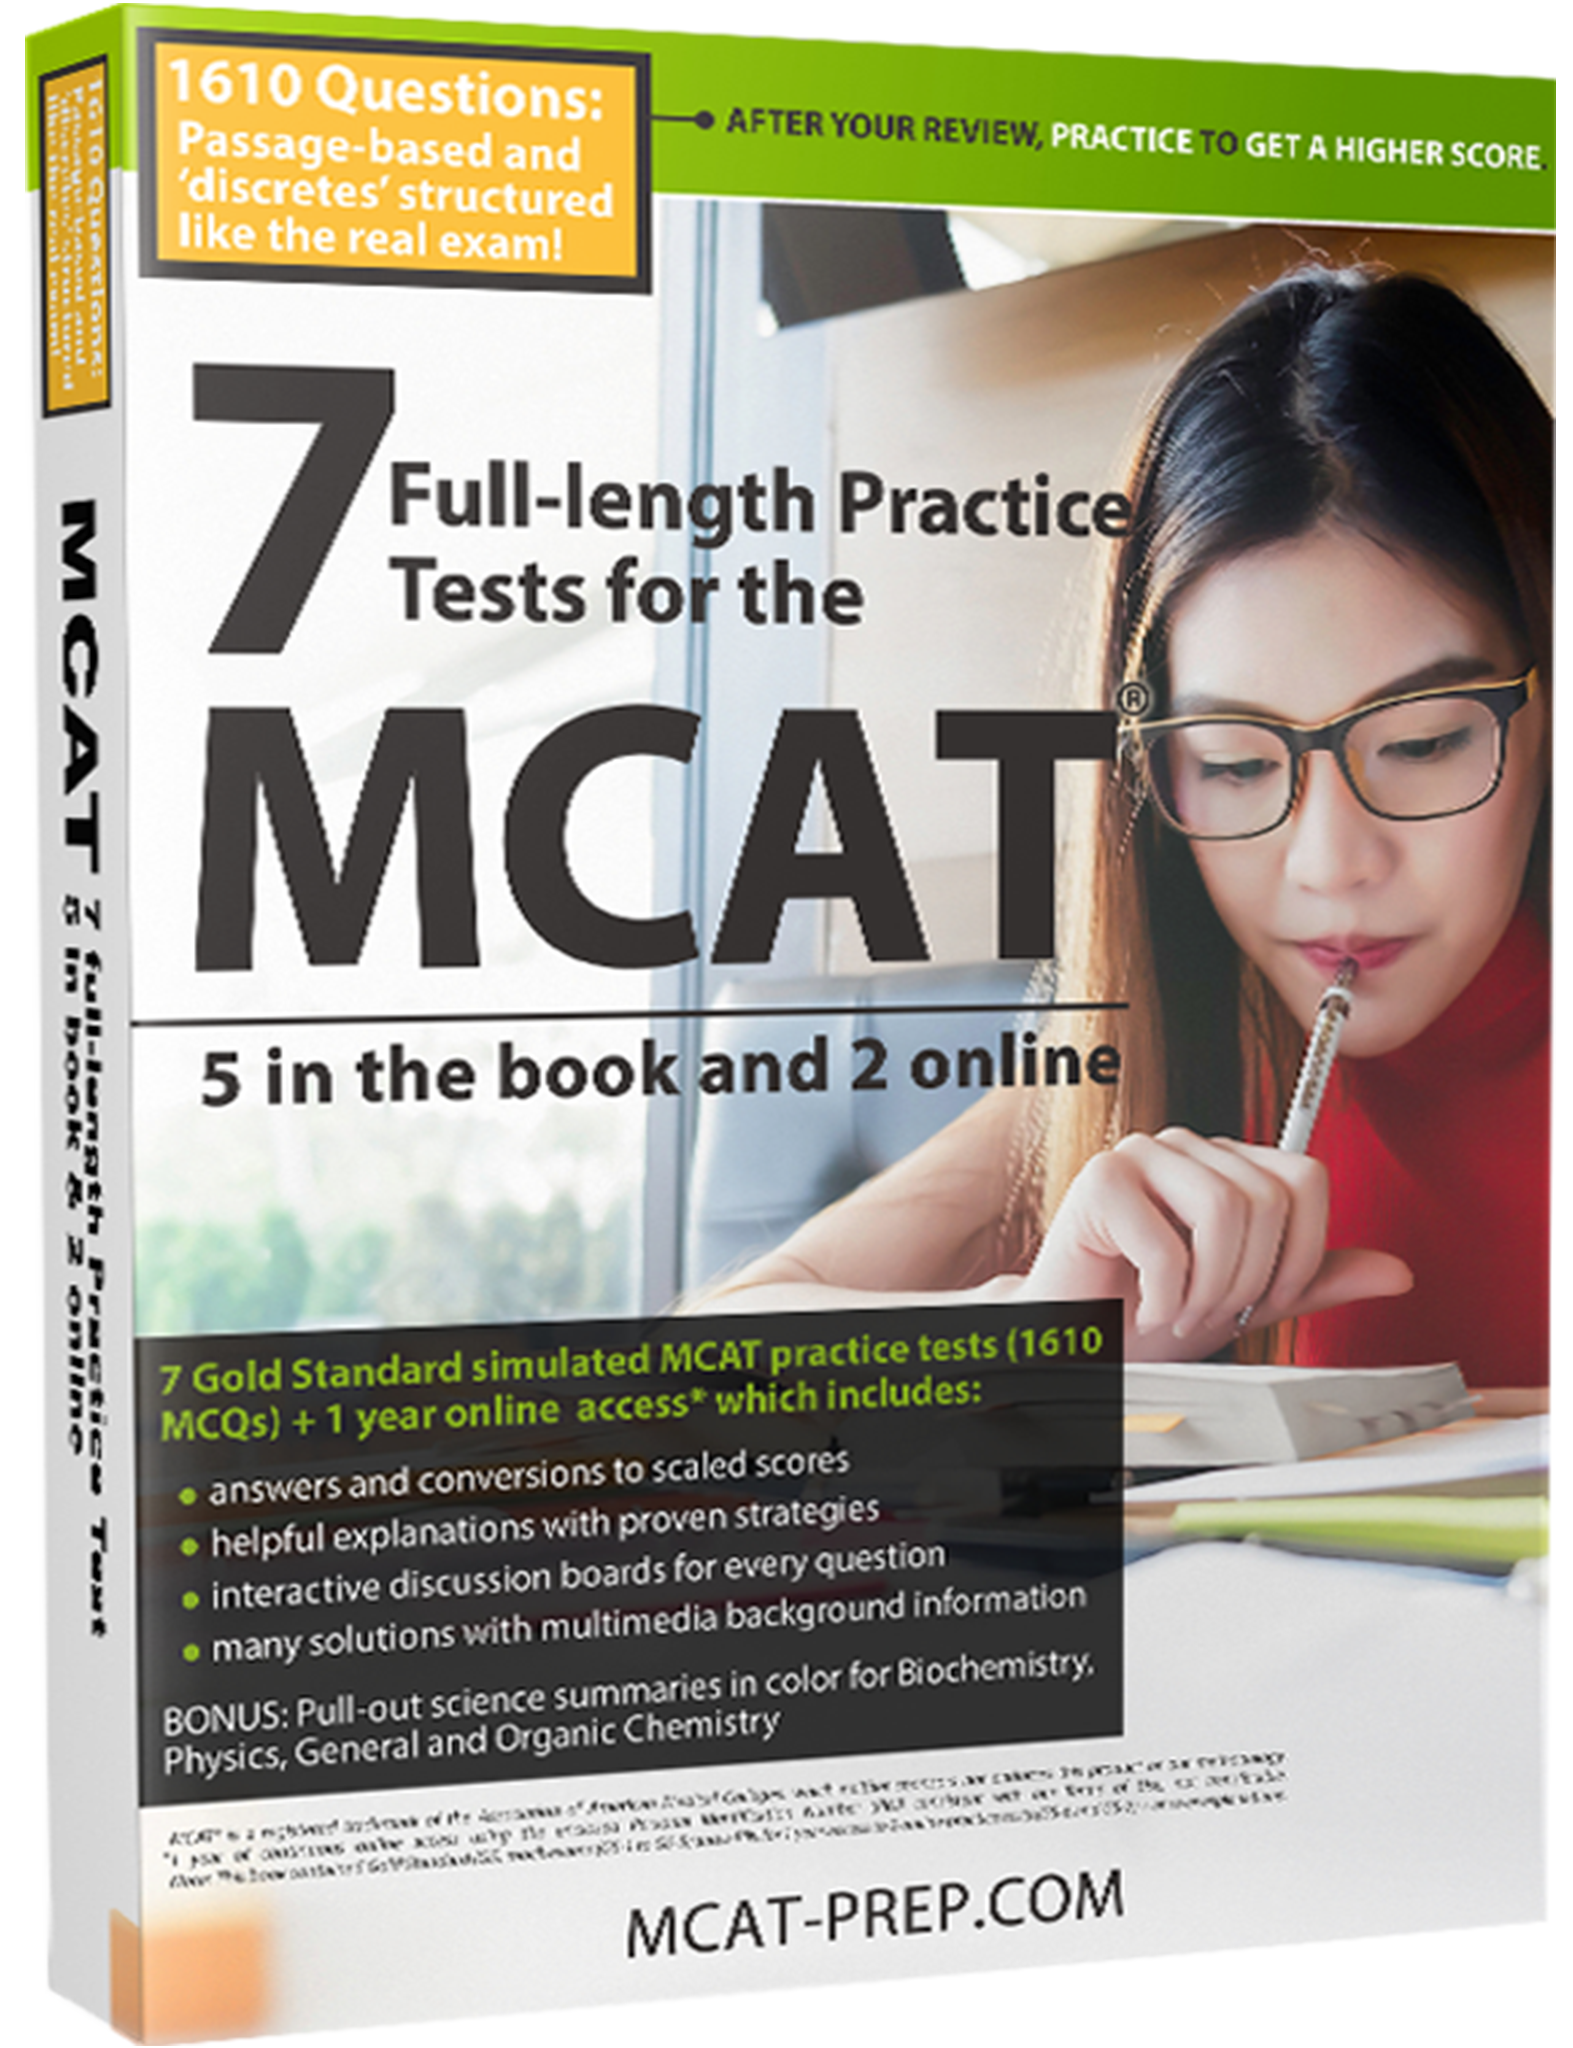 MCAT Organic Chemistry Mechanisms | Gold Standard MCAT Prep